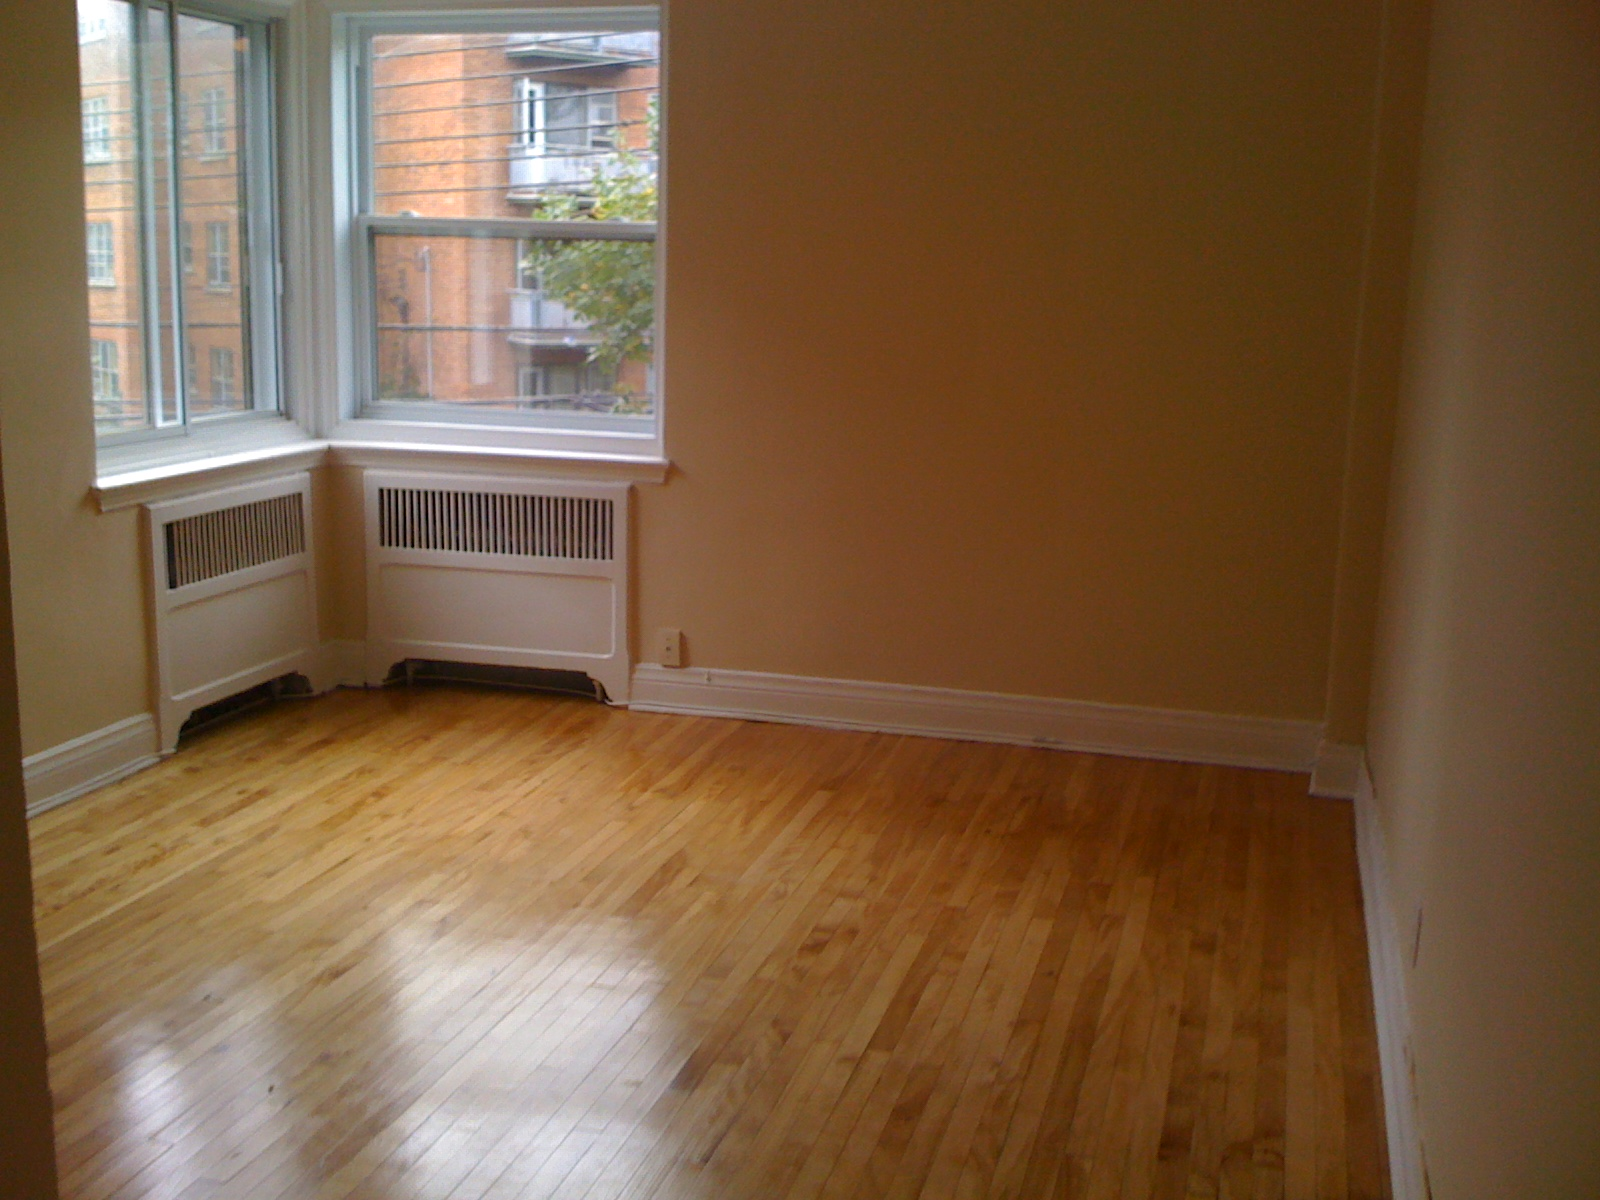 1 bedroom Apartments for rent in Cote-St-Luc at 5801-5805 CSL Road - Photo 01 - RentersPages – L27081